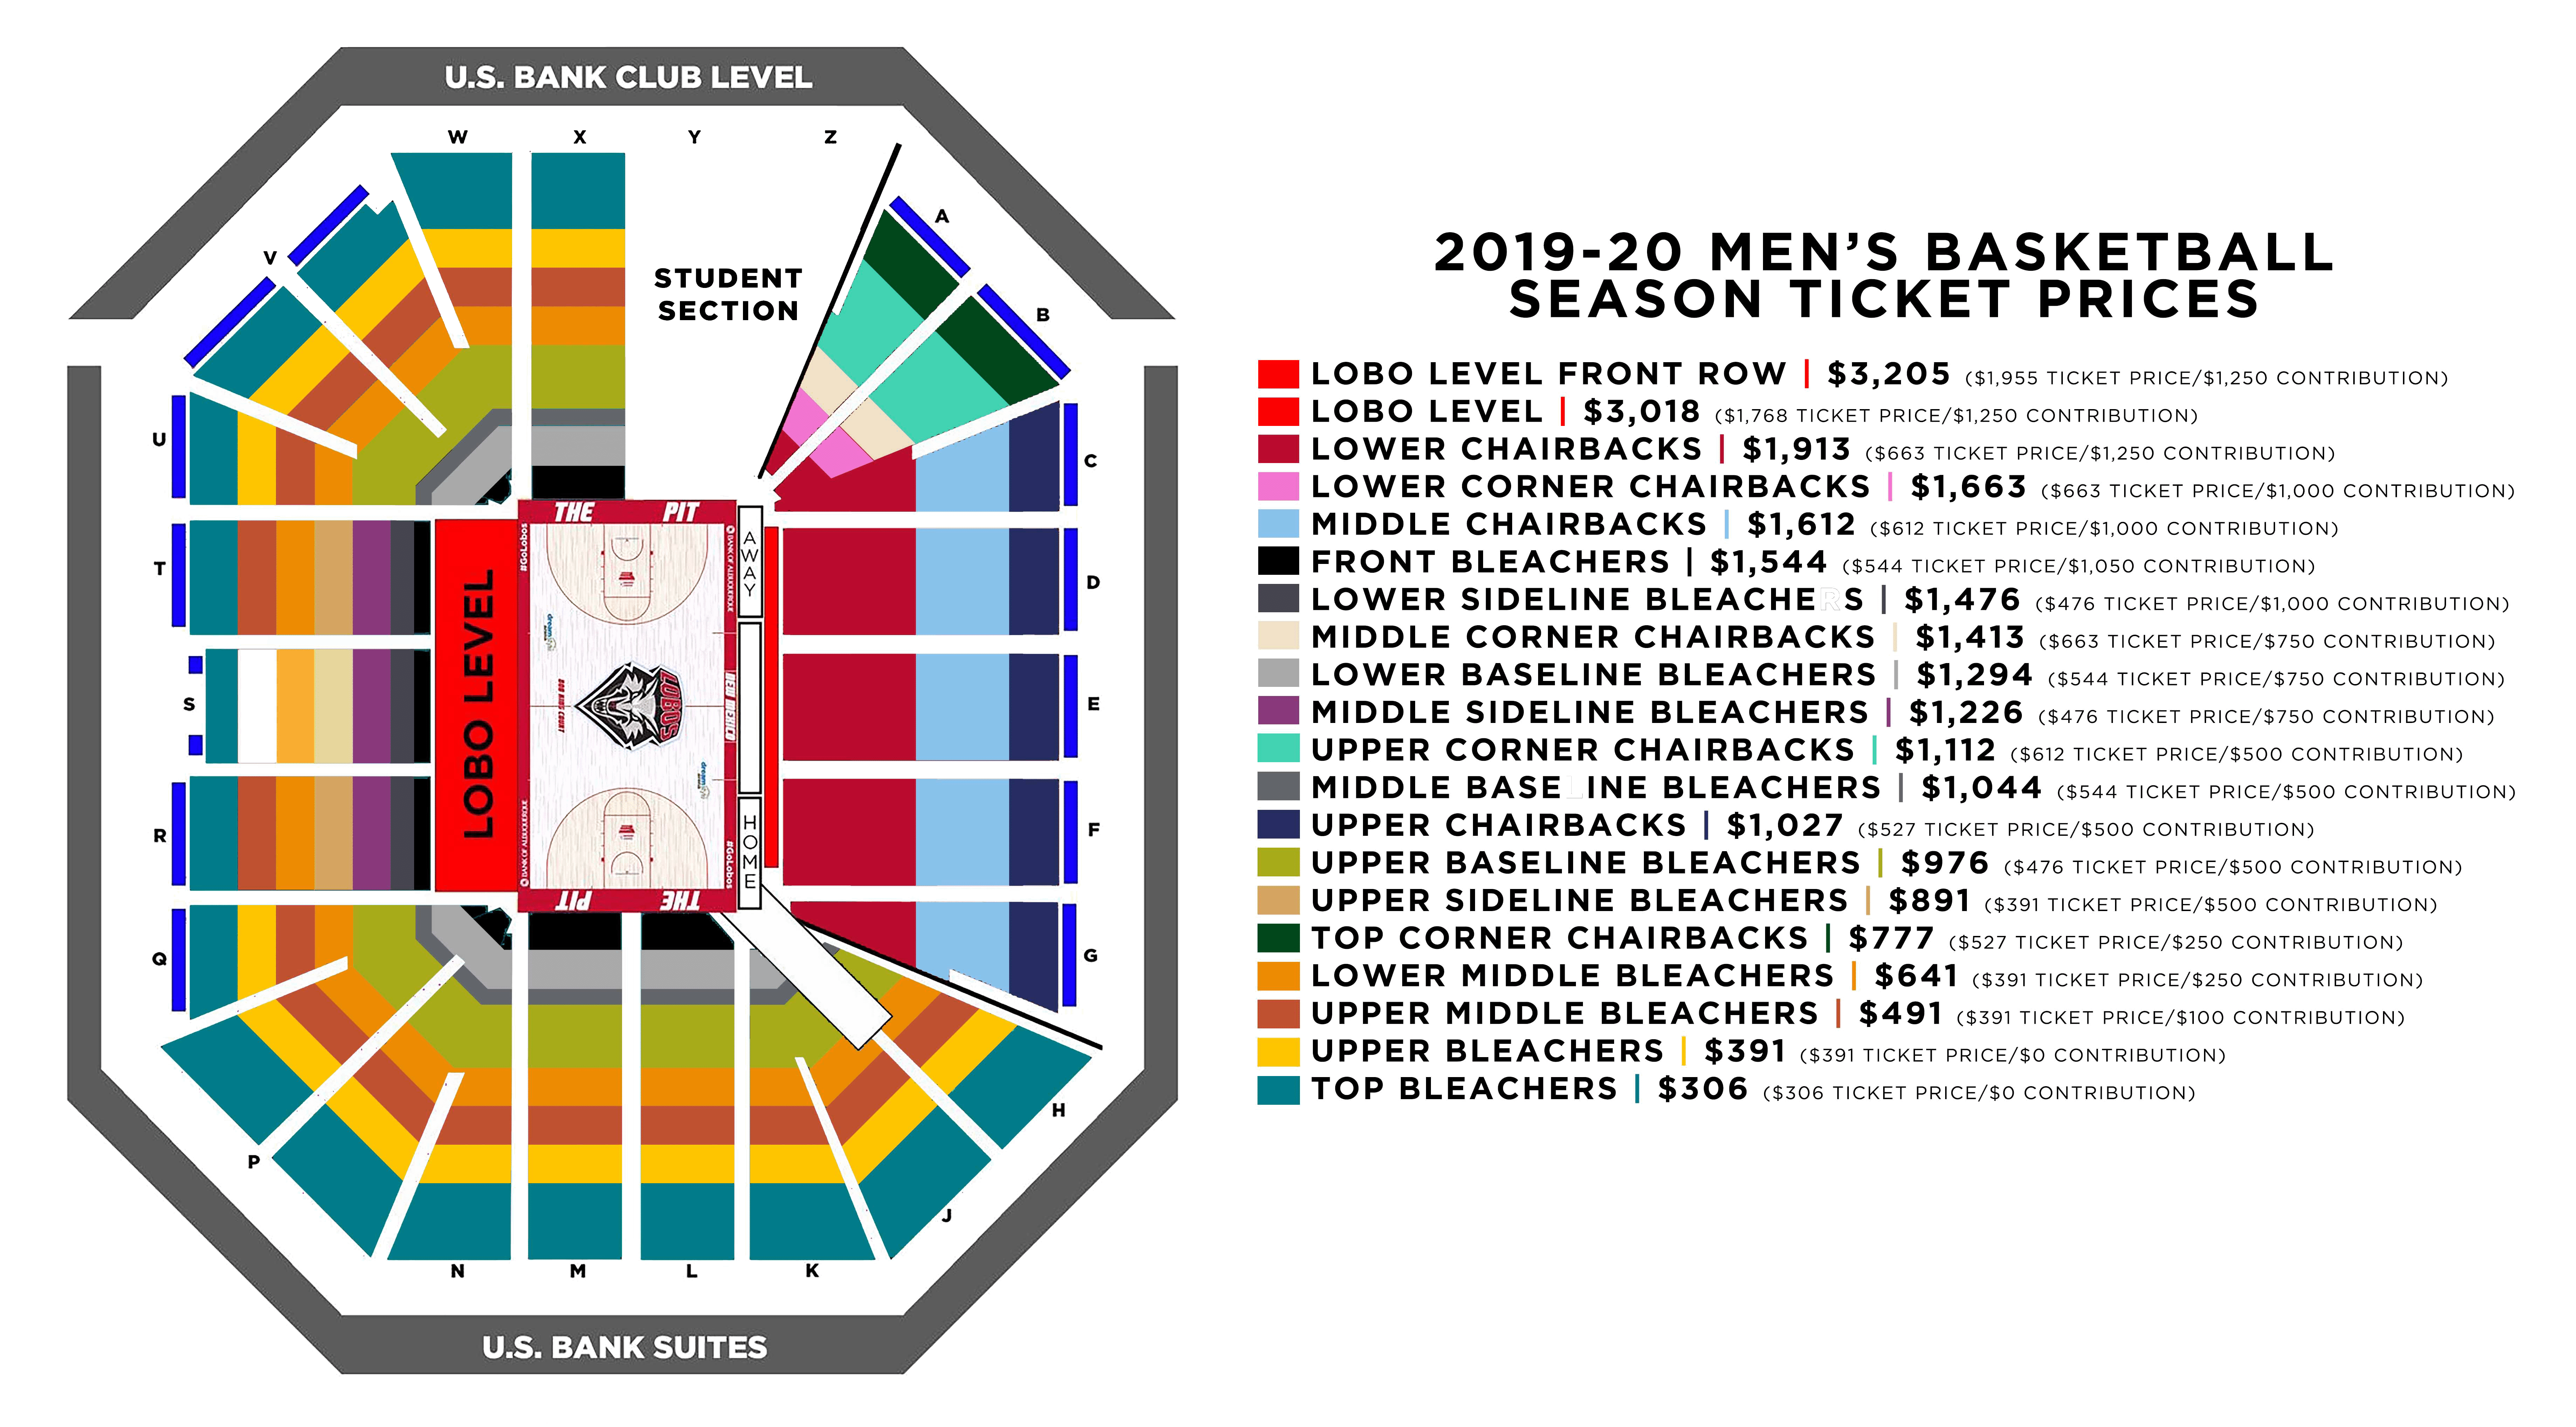 MBB Season Tickets 2019